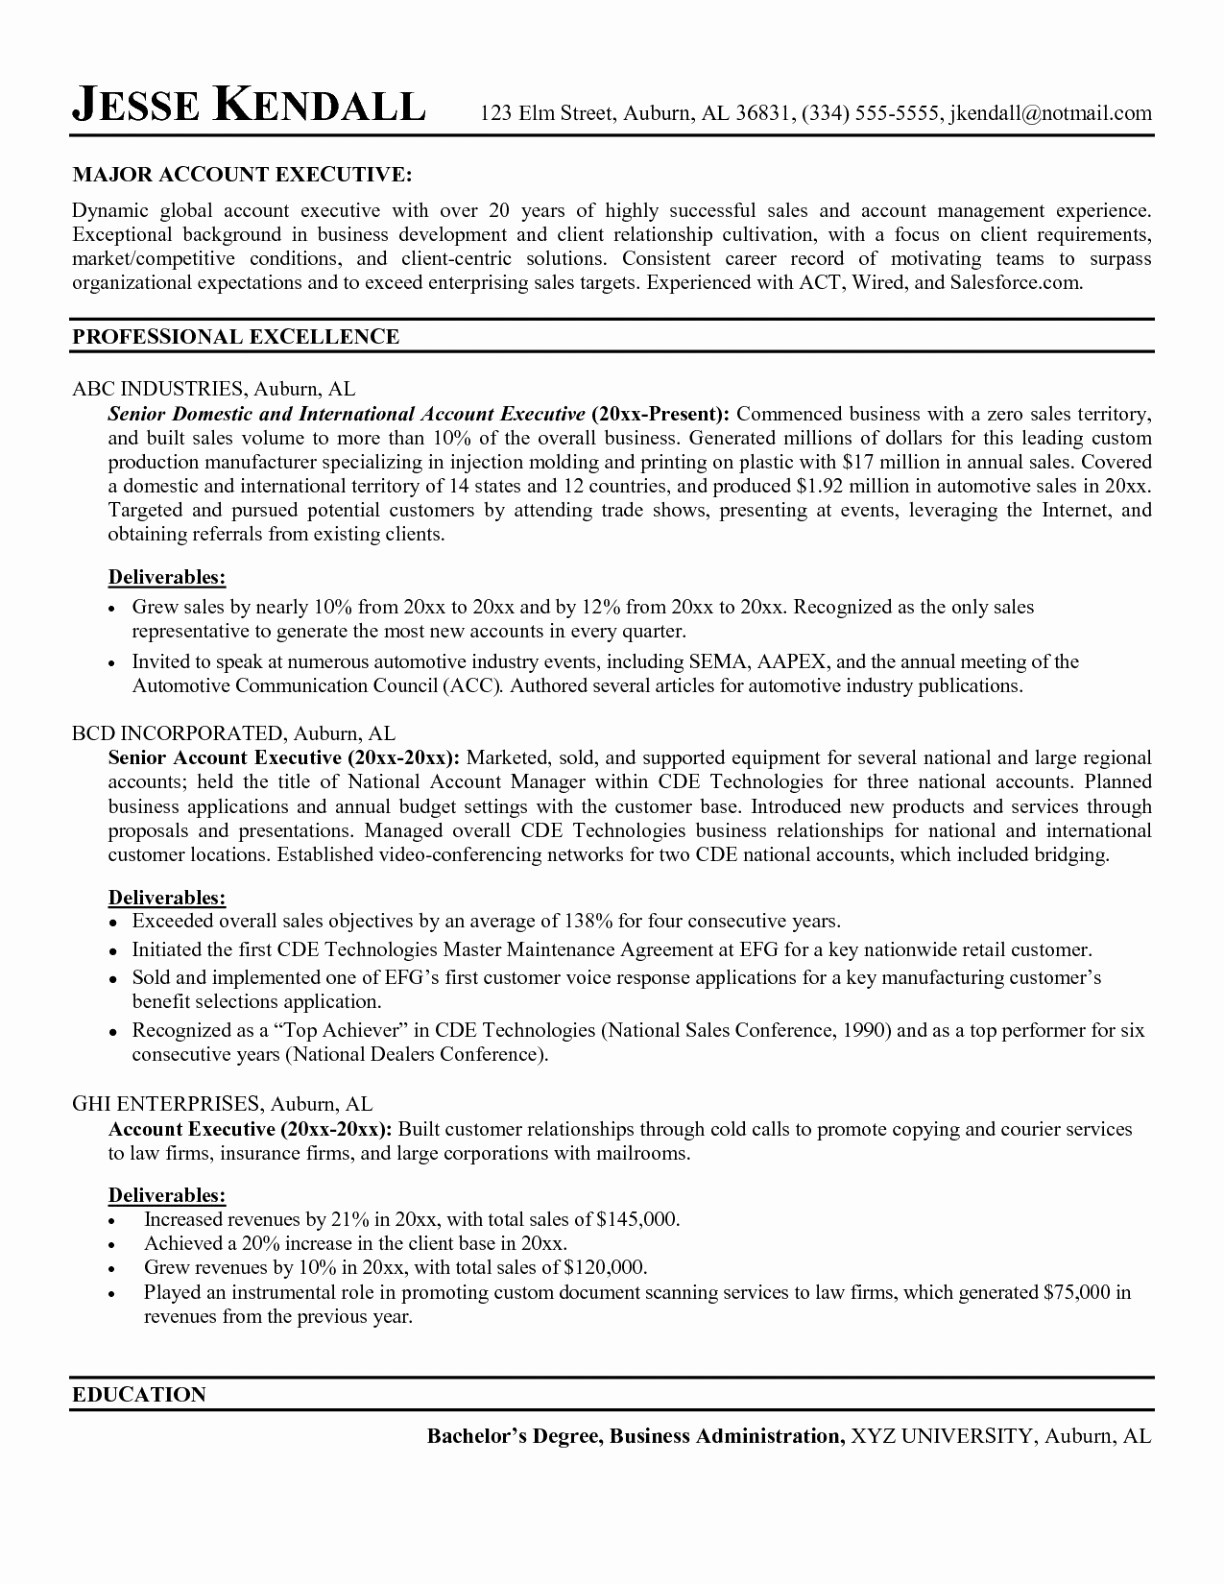 executive automotive resume example-Account Manager Resume New Resume For Sales Manager Sales Executive Resume Best Rsync Resume 0d 7-g